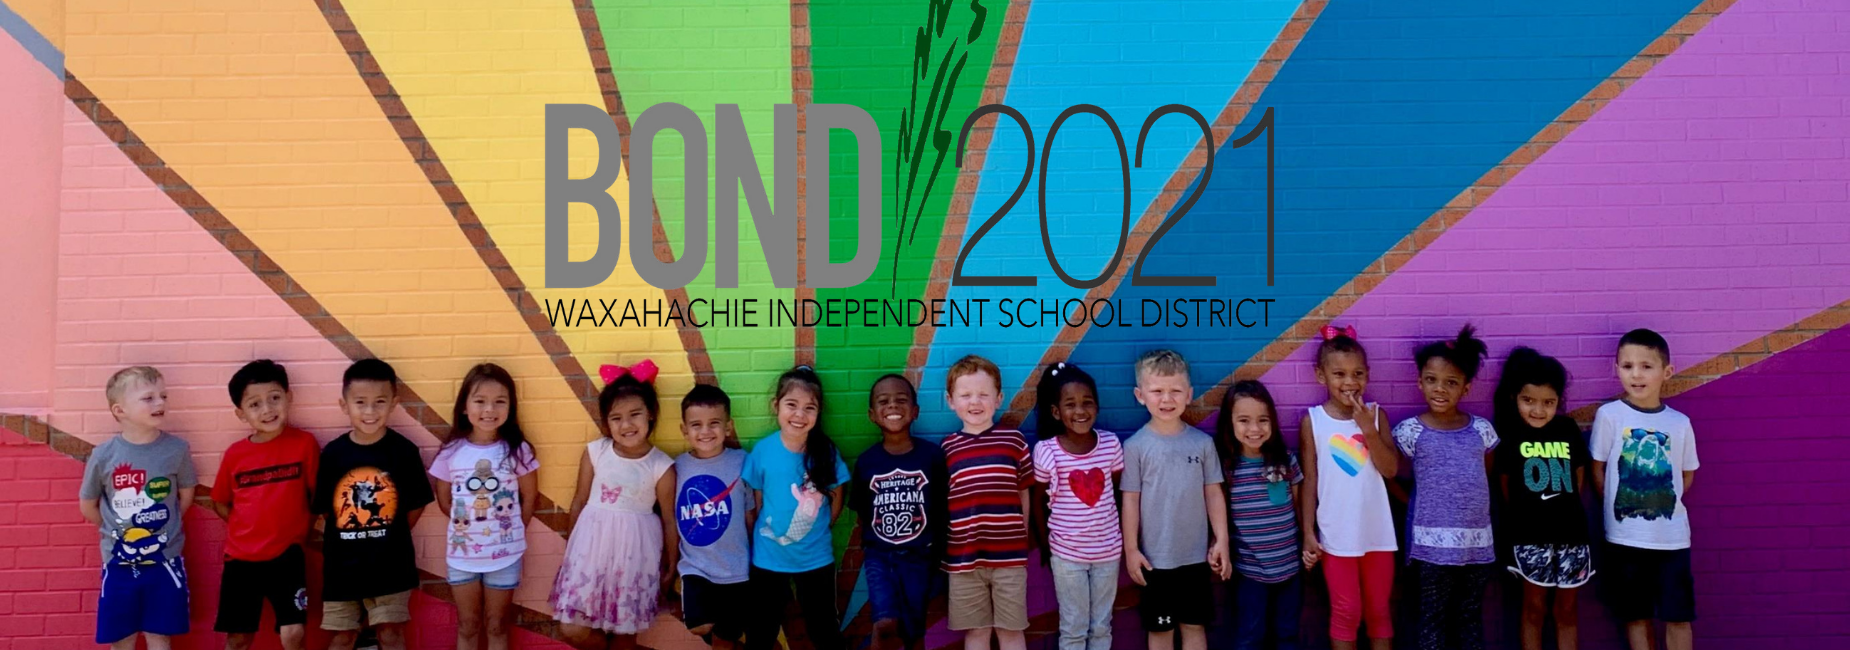 young kiddos in front of a colorfully painted wall with the WISD bond logo above them